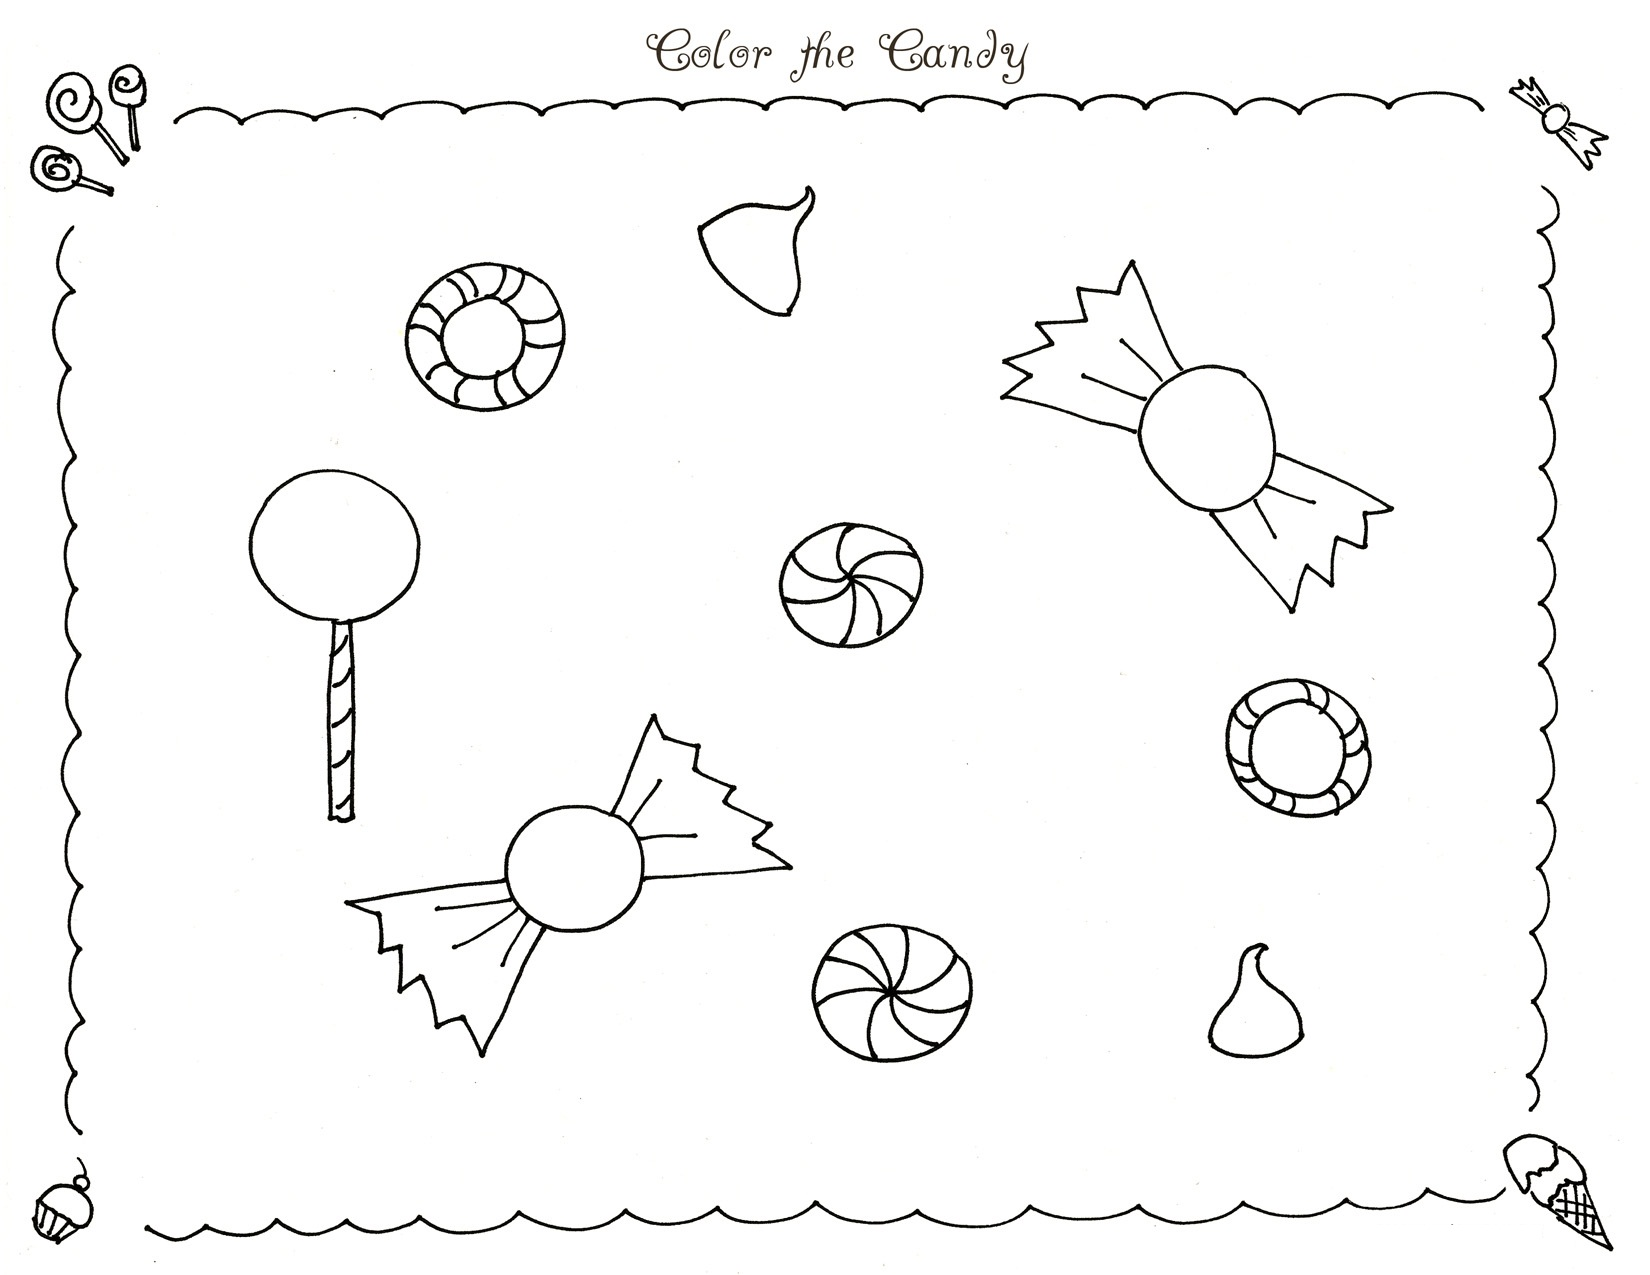 Sweets coloring page | Colorish: free coloring app for adults by ... | 1275x1650